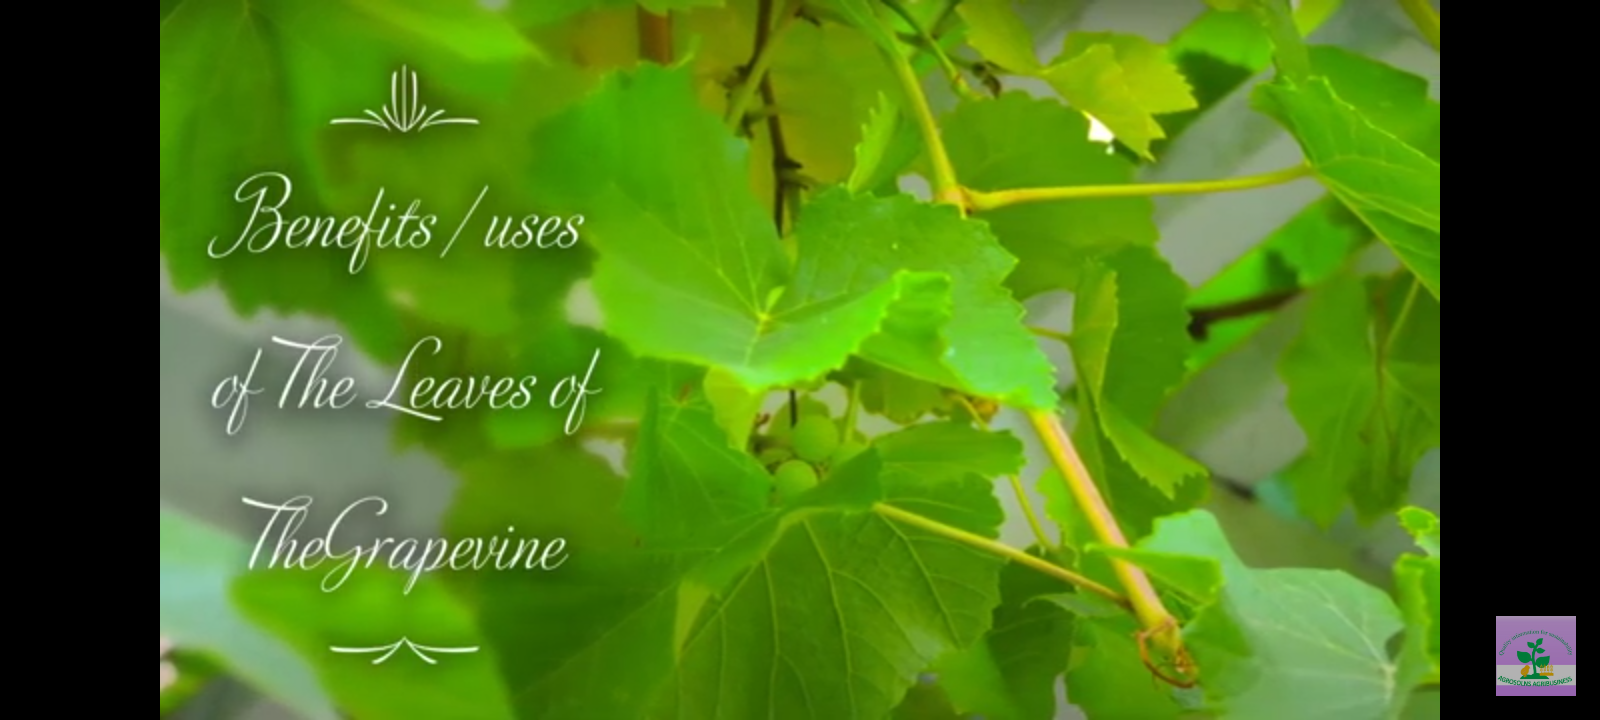 Ten Benefits of the grapevine leaves